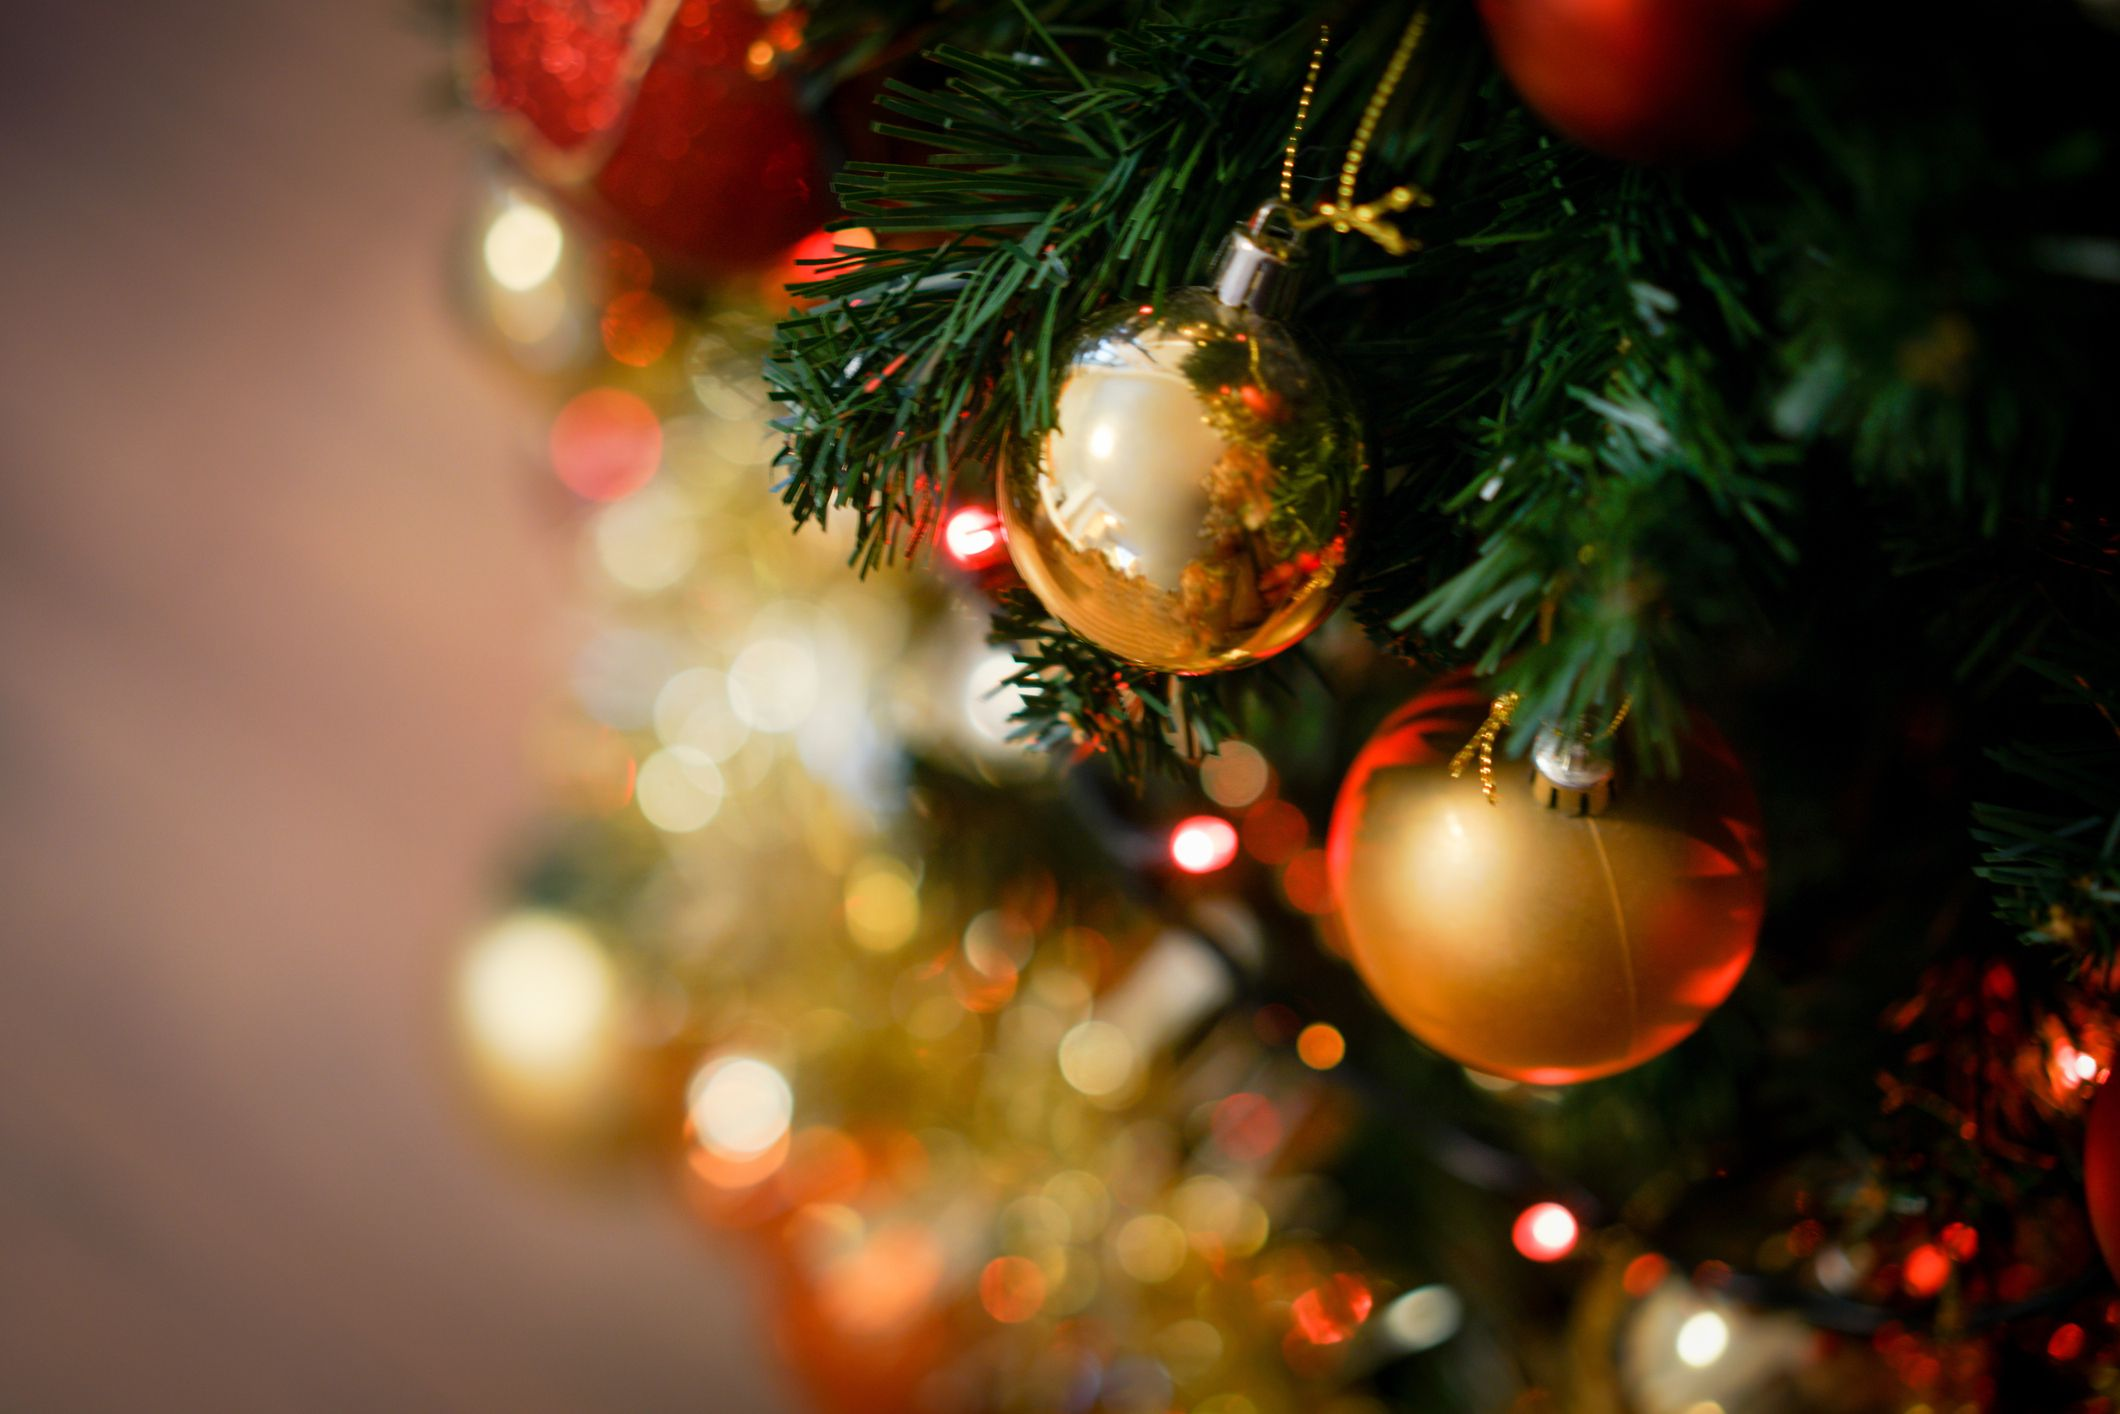 Rainbow <b>Christmas</b> Trees Will Be Biggest <b>Christmas 2018</b> Trend, says ...